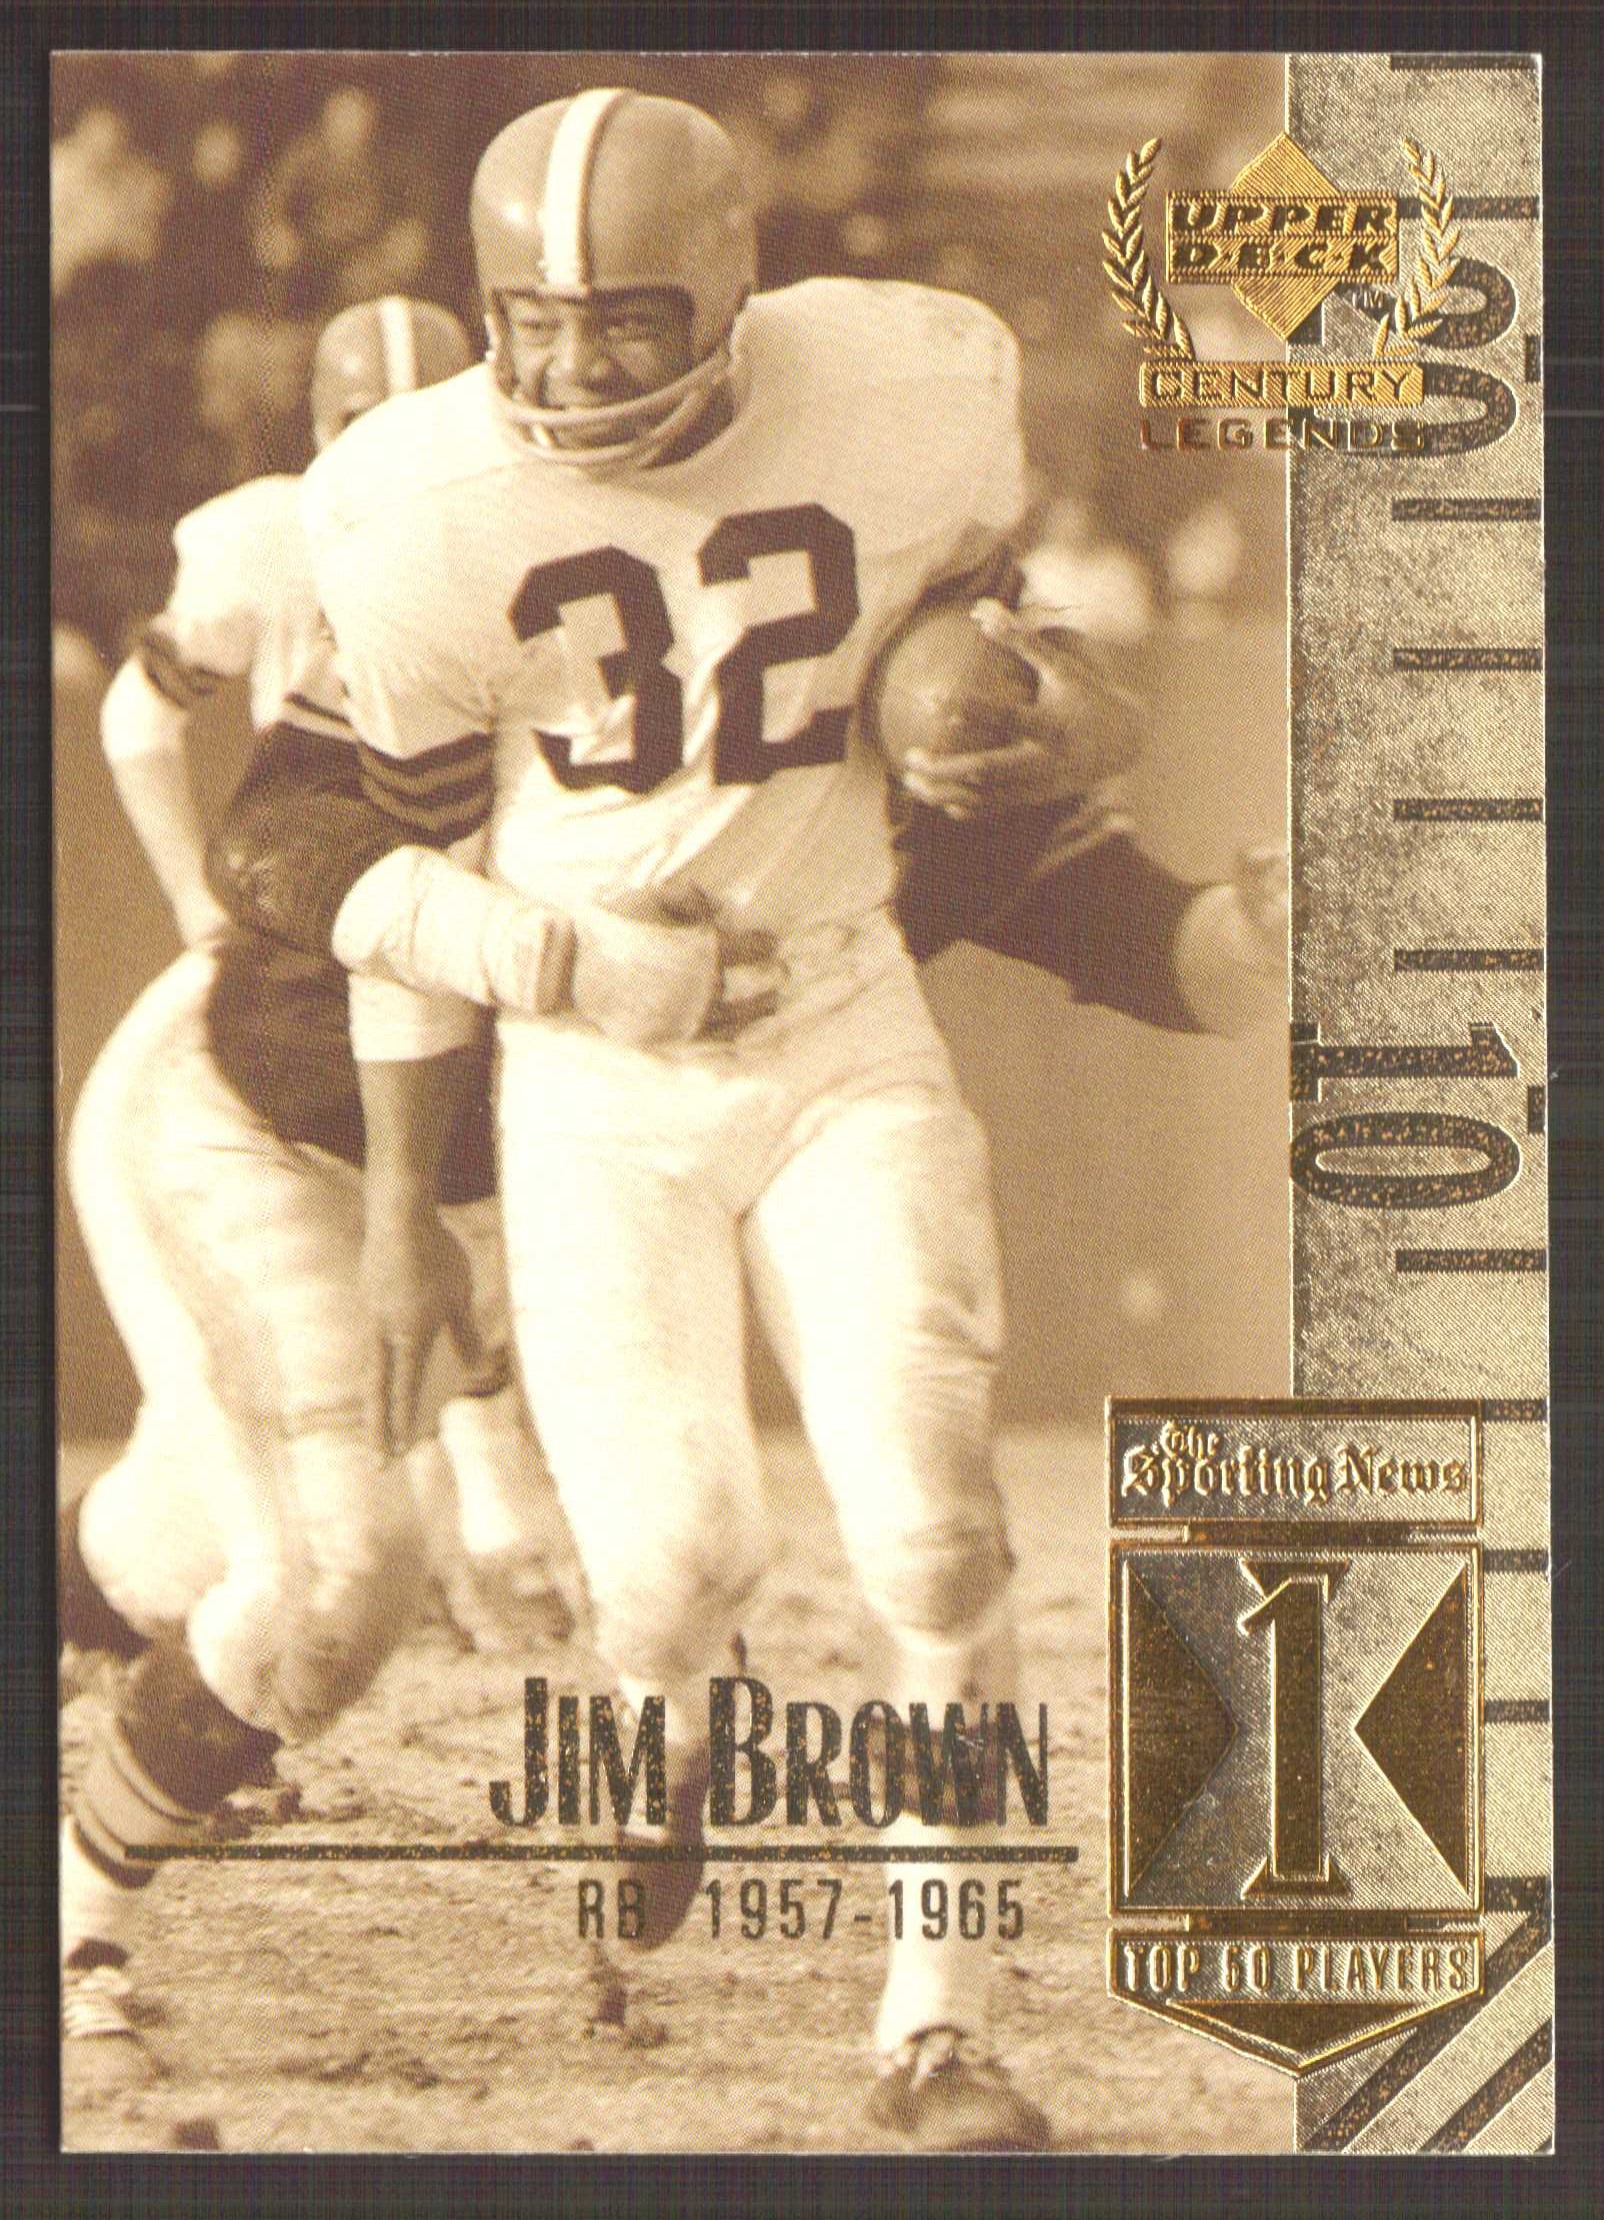 1999 Upper Deck Century Legends #1 Jim Brown